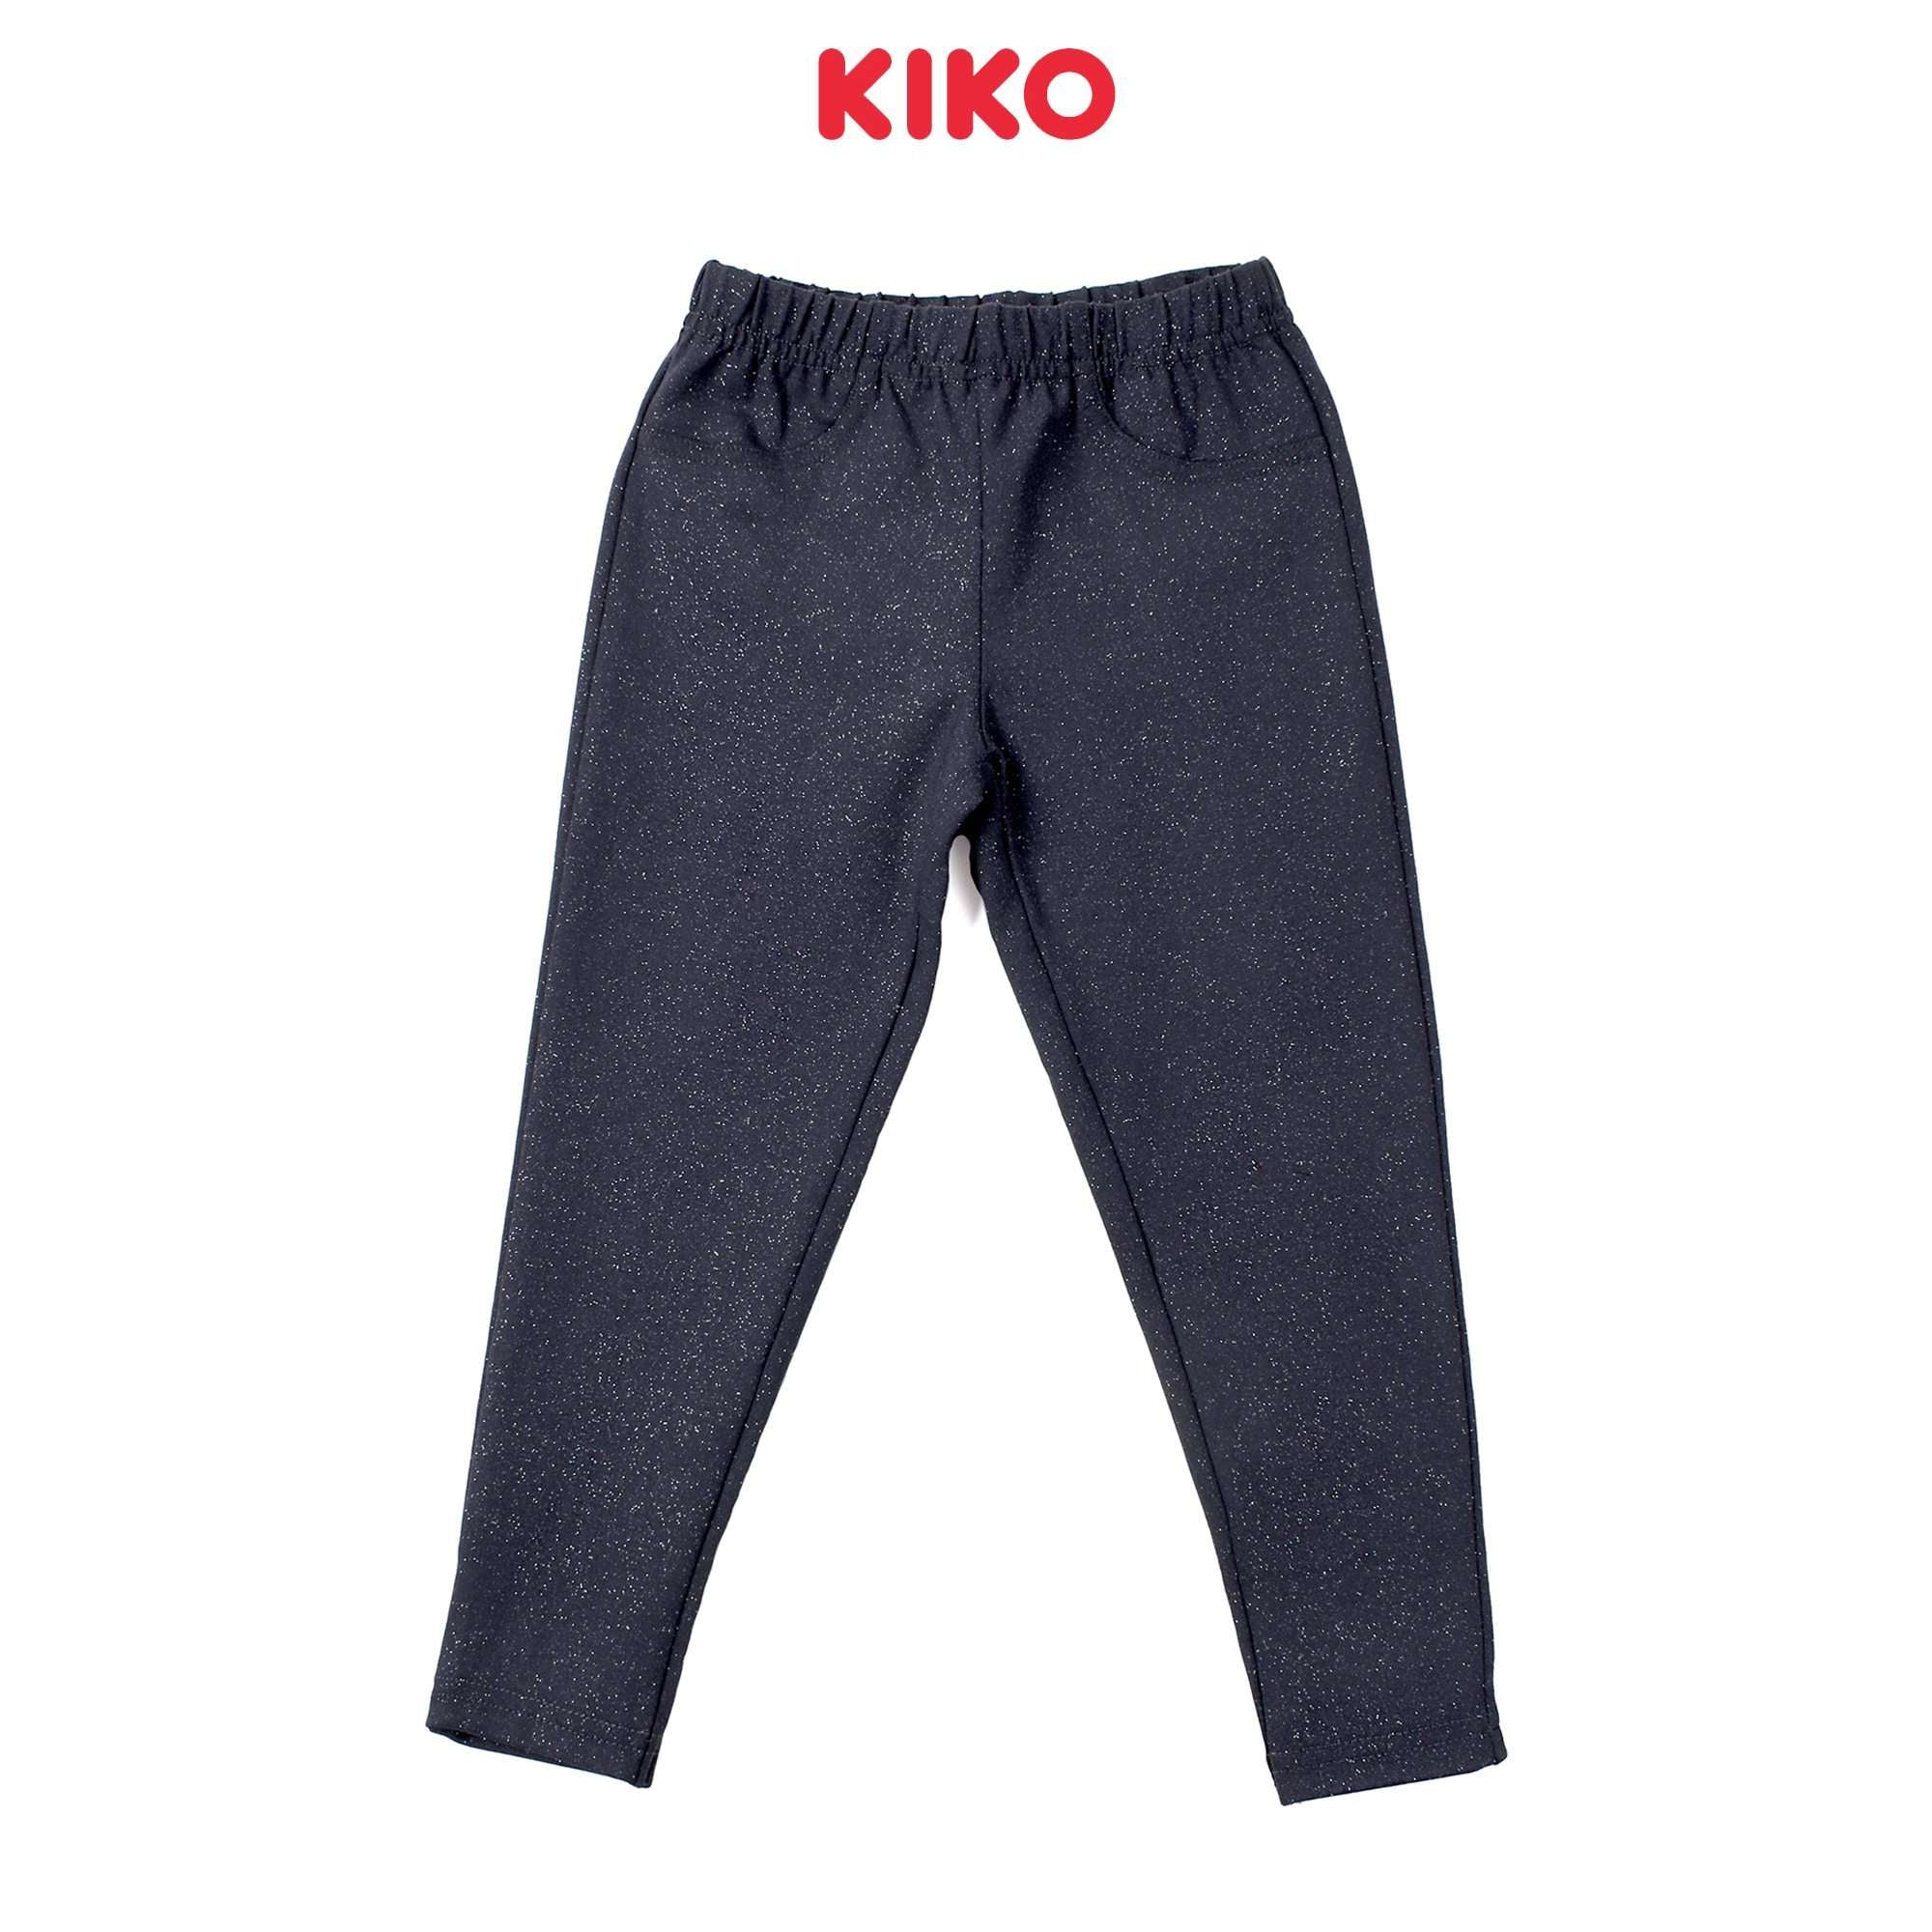 KIKO Girl Legging - Dark Grey 126102-281 : Buy KIKO online at CMG.MY